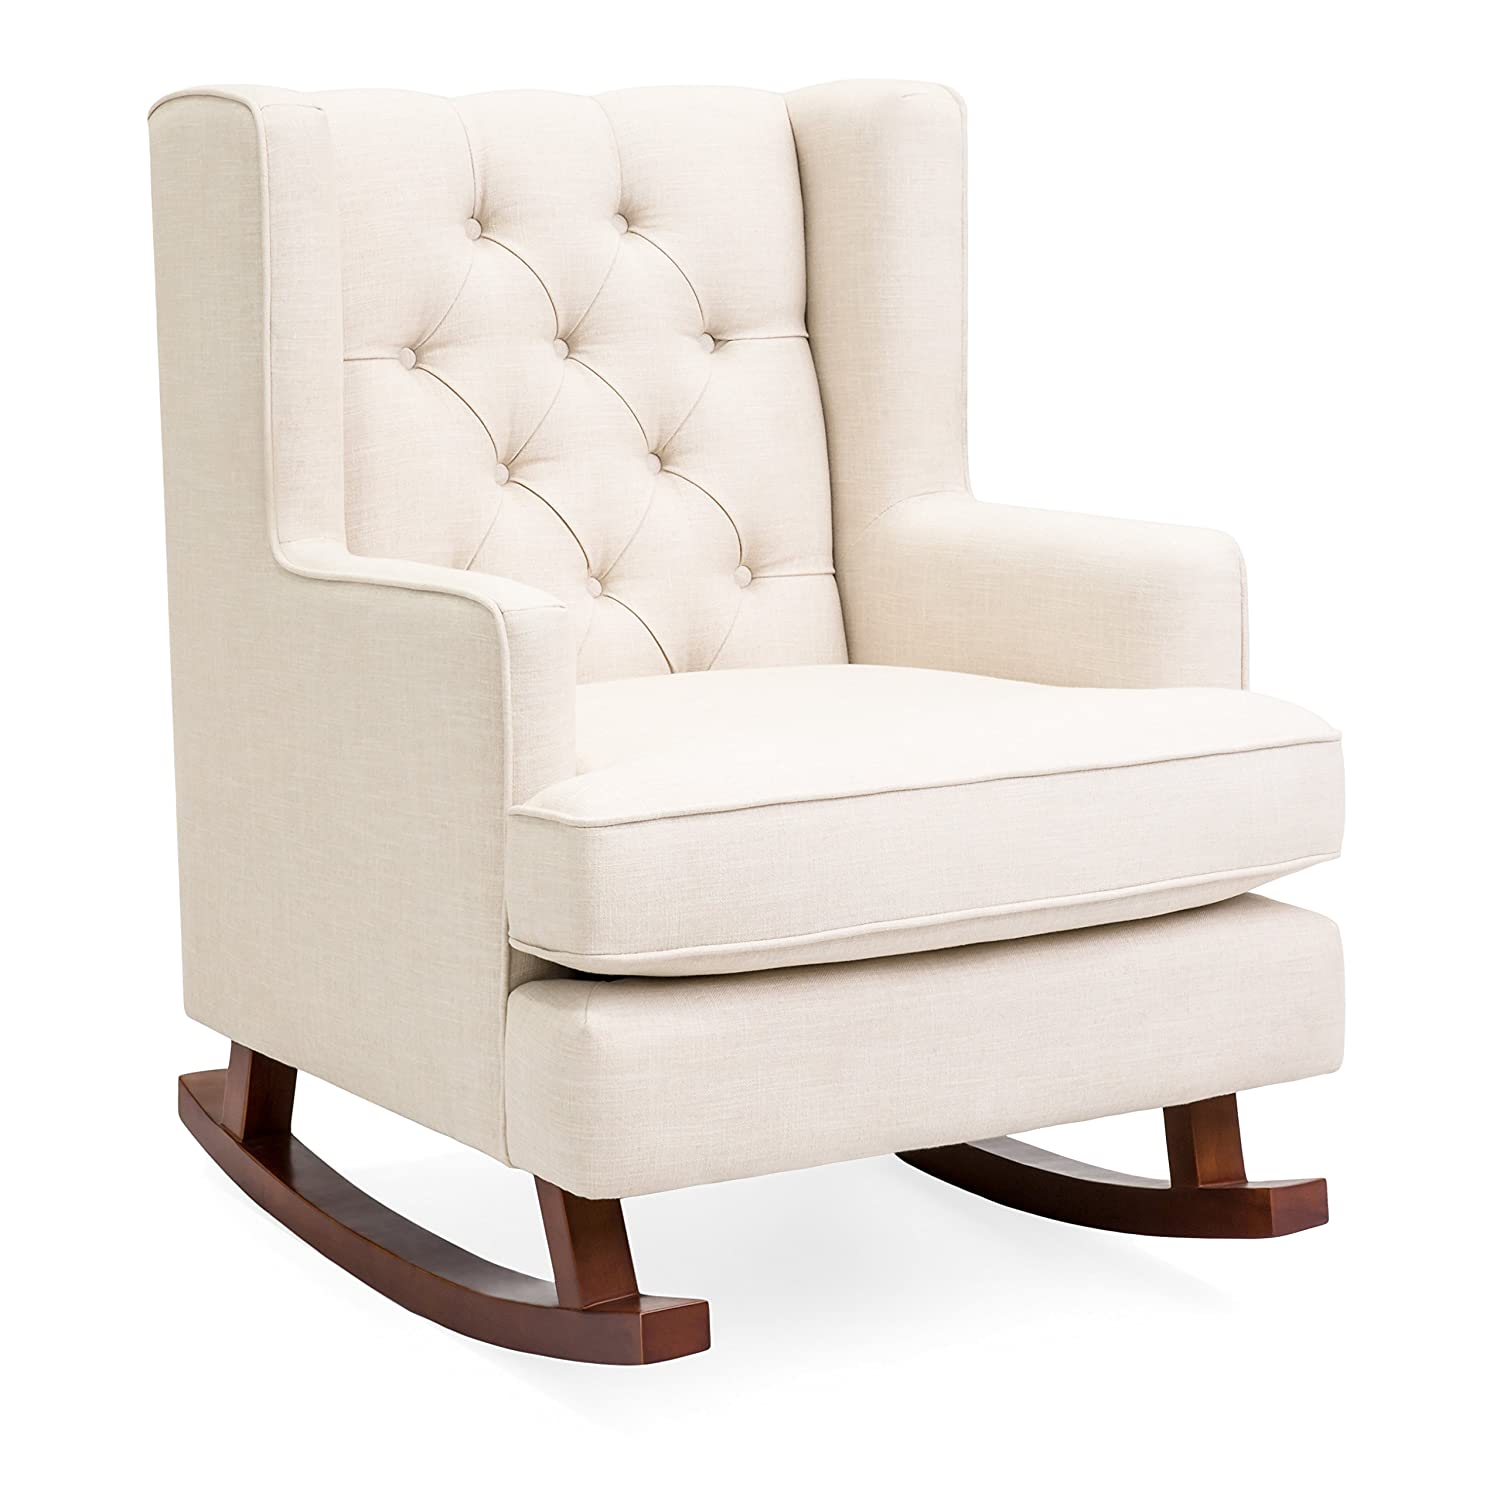 Amazing Best Choice Products Tufted Upholstered Wingback Accent Chair Rocker W Wood Frame Beige Customarchery Wood Chair Design Ideas Customarcherynet